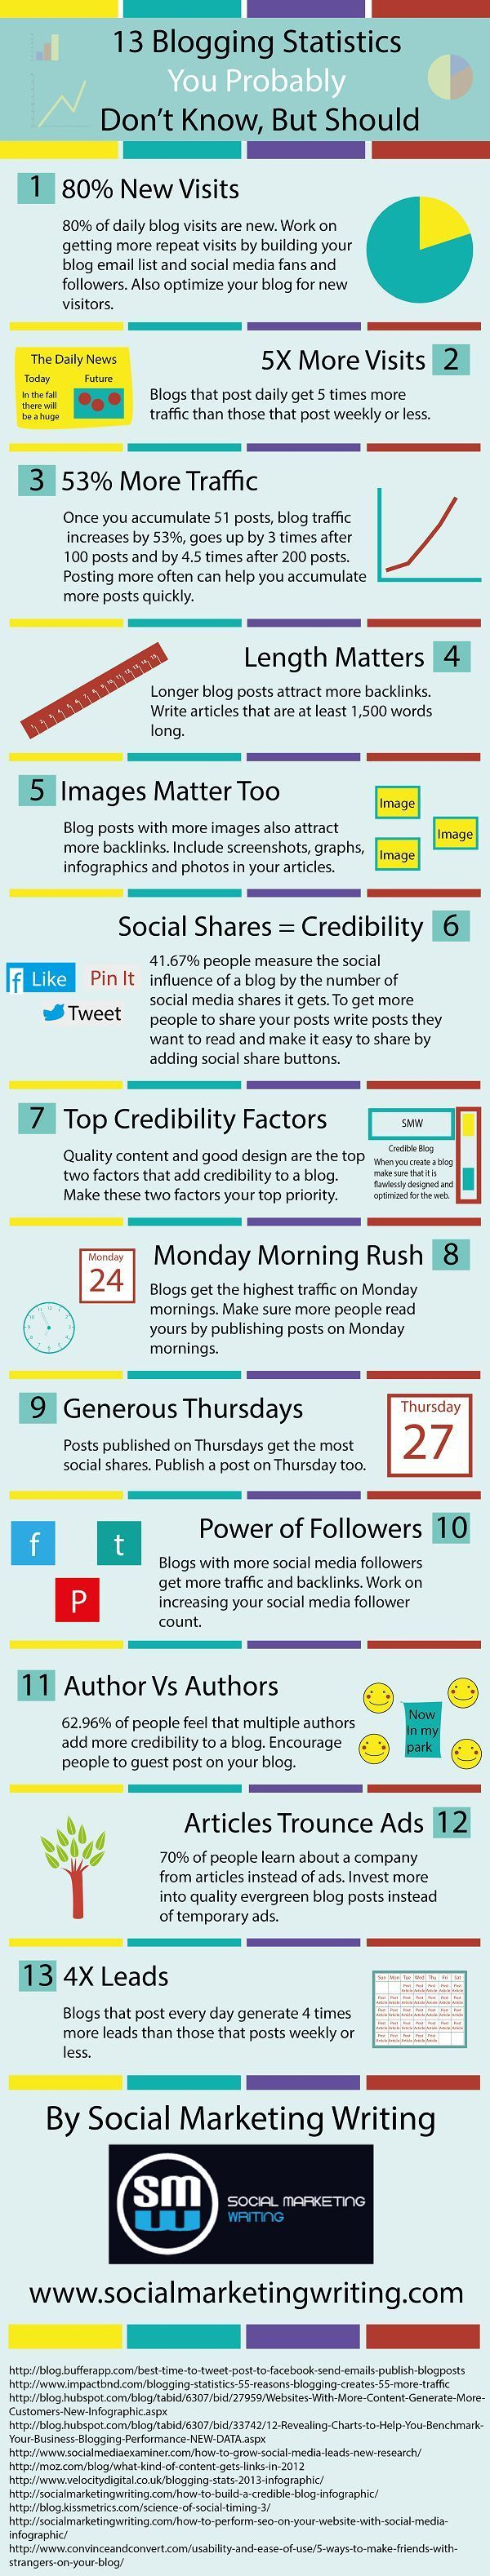 13 Blogging Statistics That Will Make You Change Your Strategy Immediately